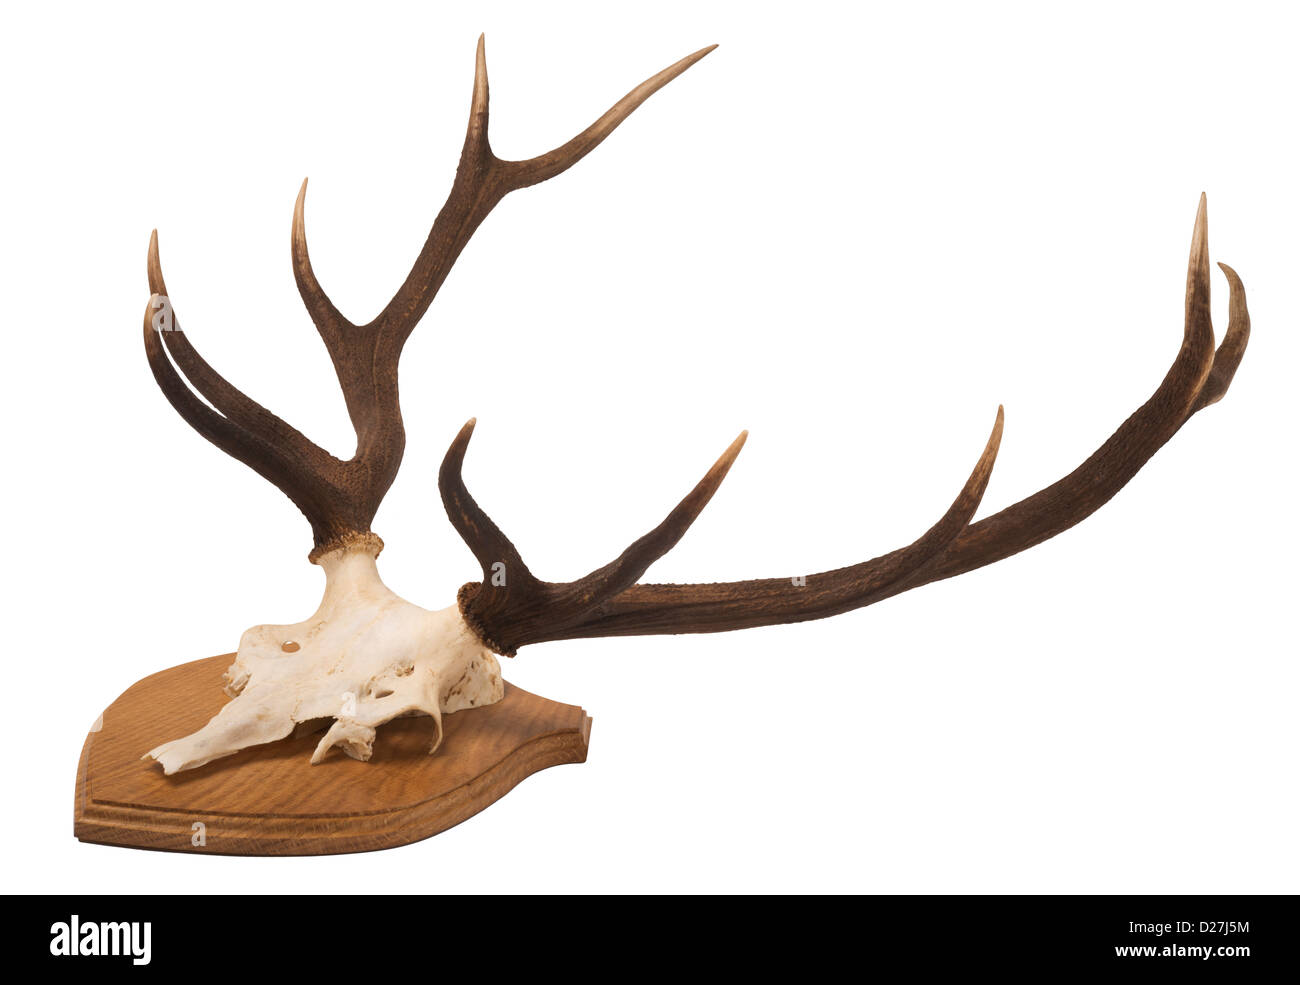 Bone Shield Stock Photos & Bone Shield Stock Images - Alamy